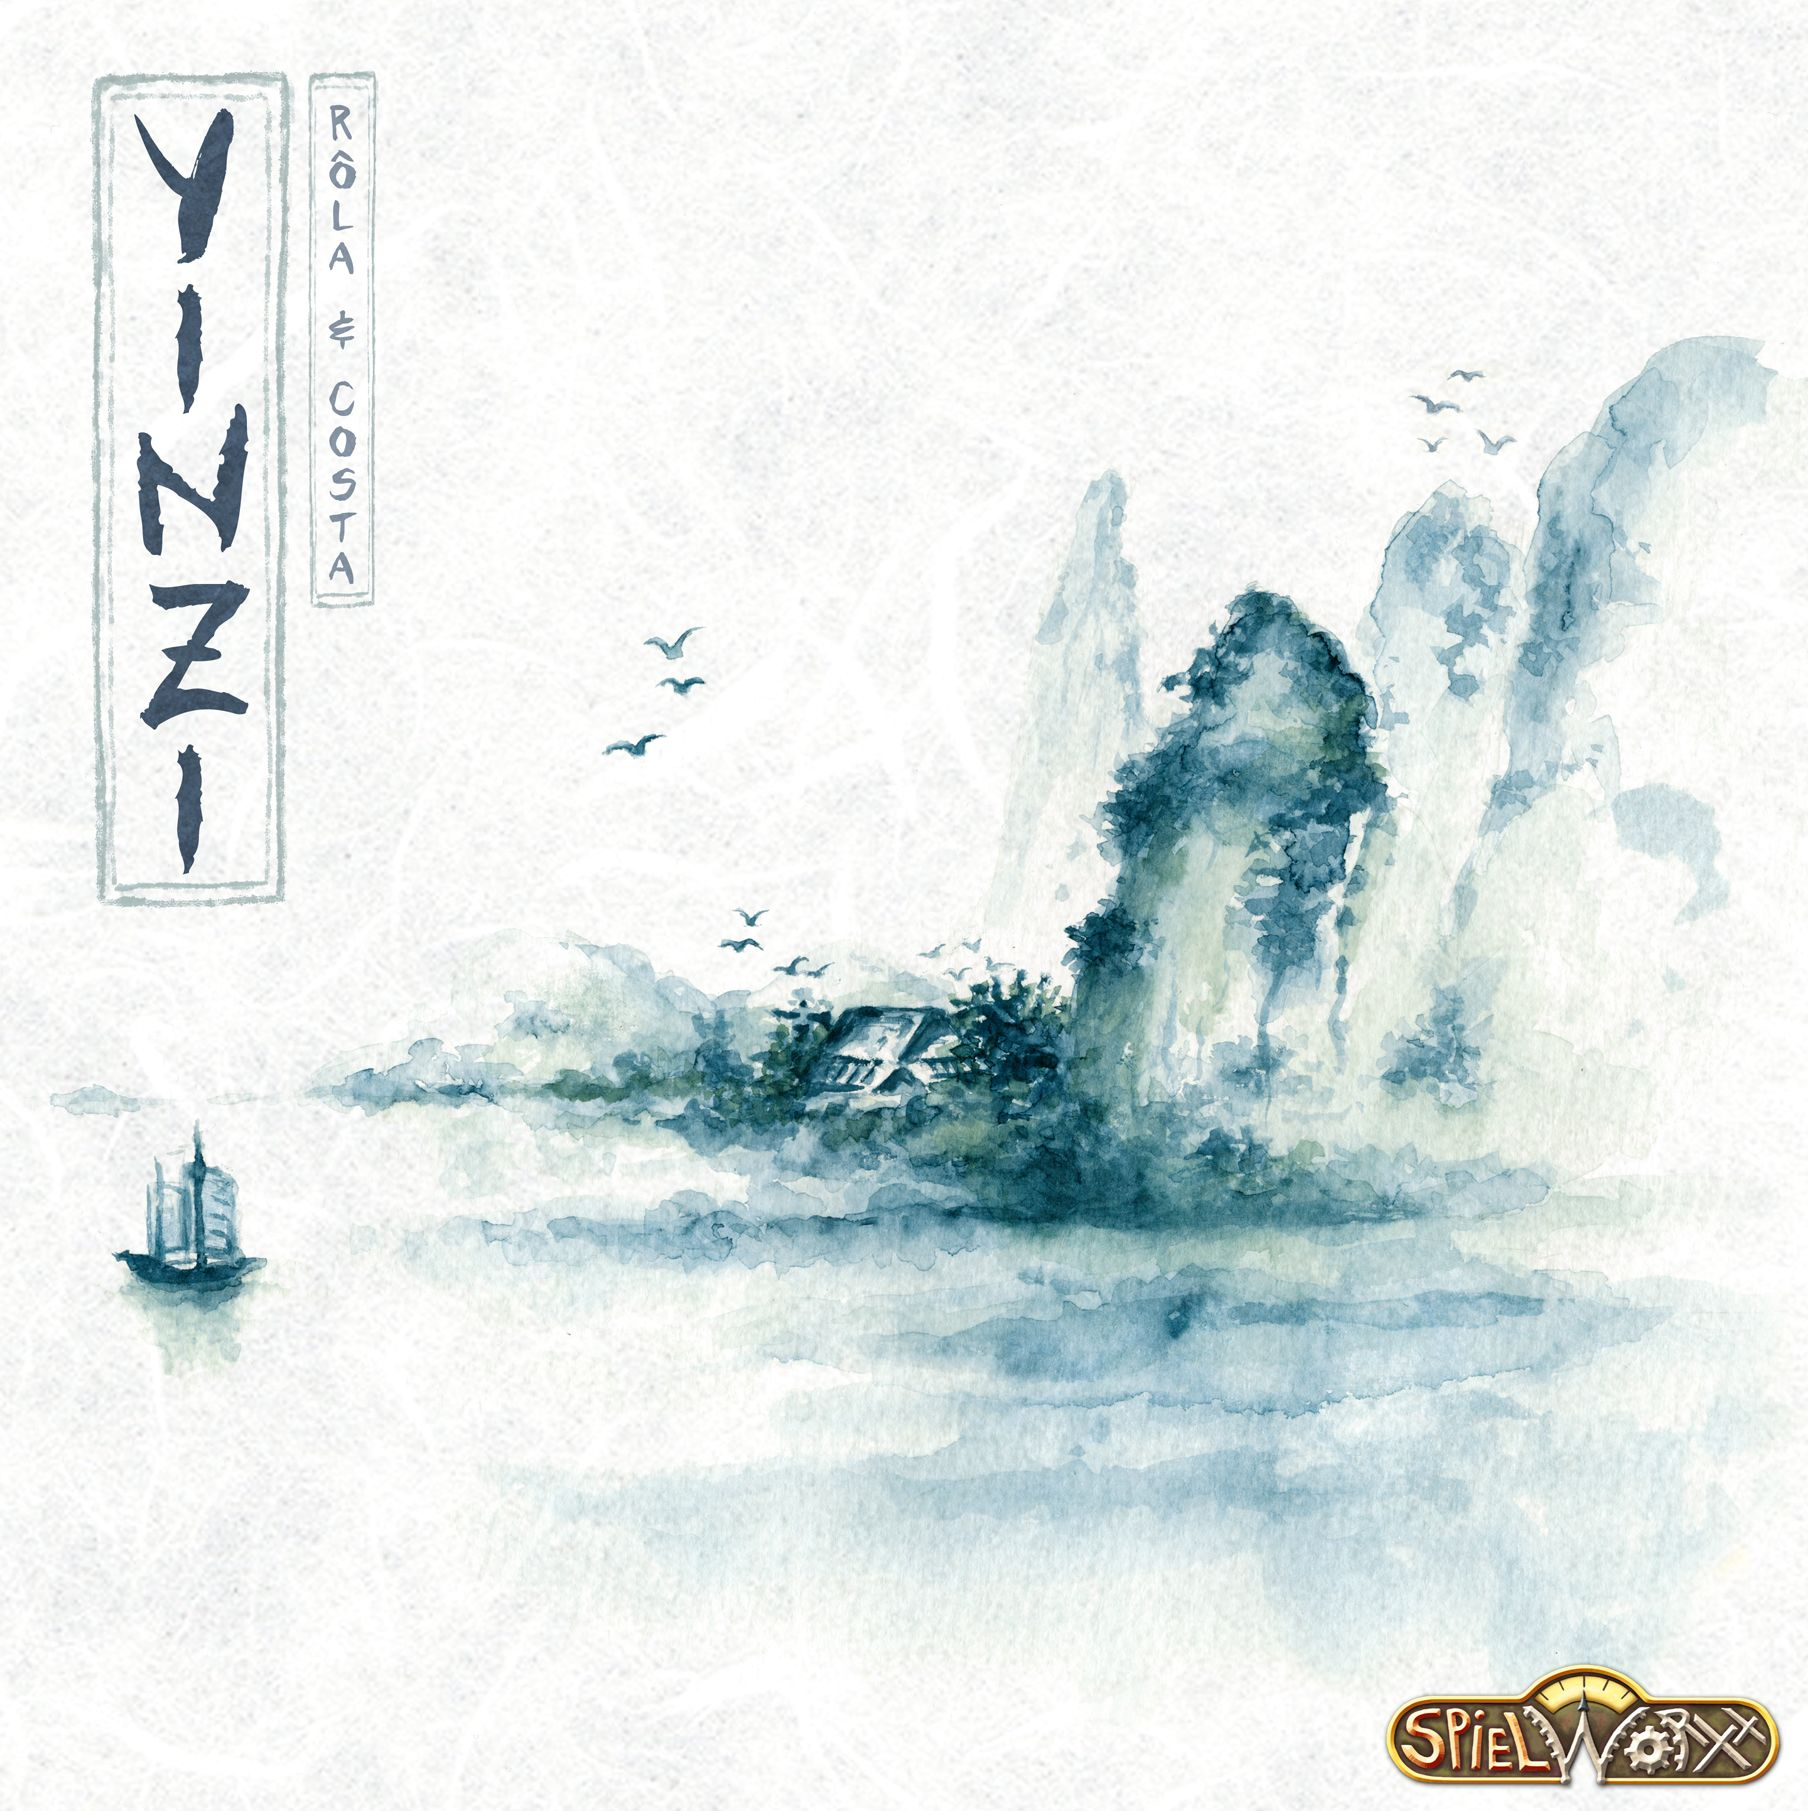 Yínzi: The Shining Ming Dynasty